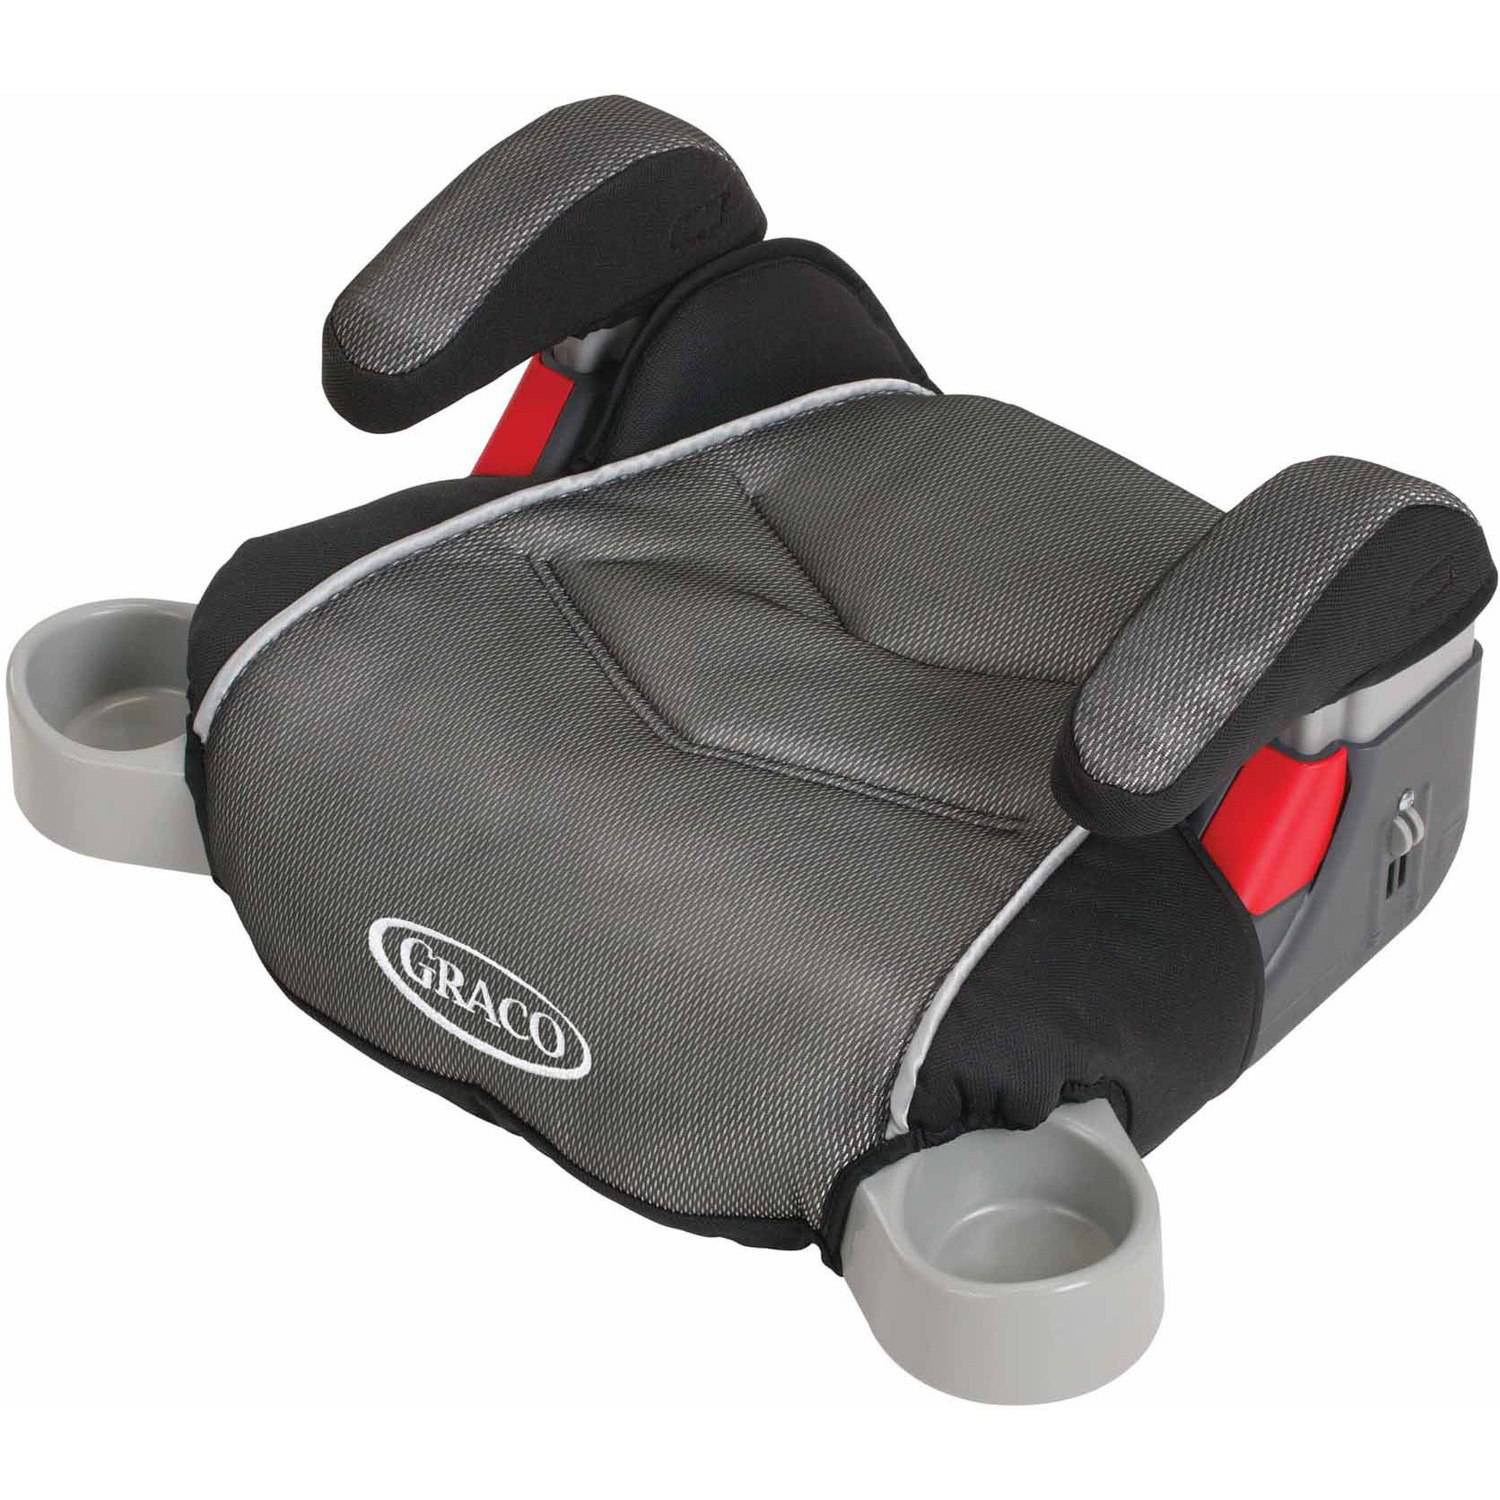 Graco Backless Turbo Booster Car Seat, Galaxy